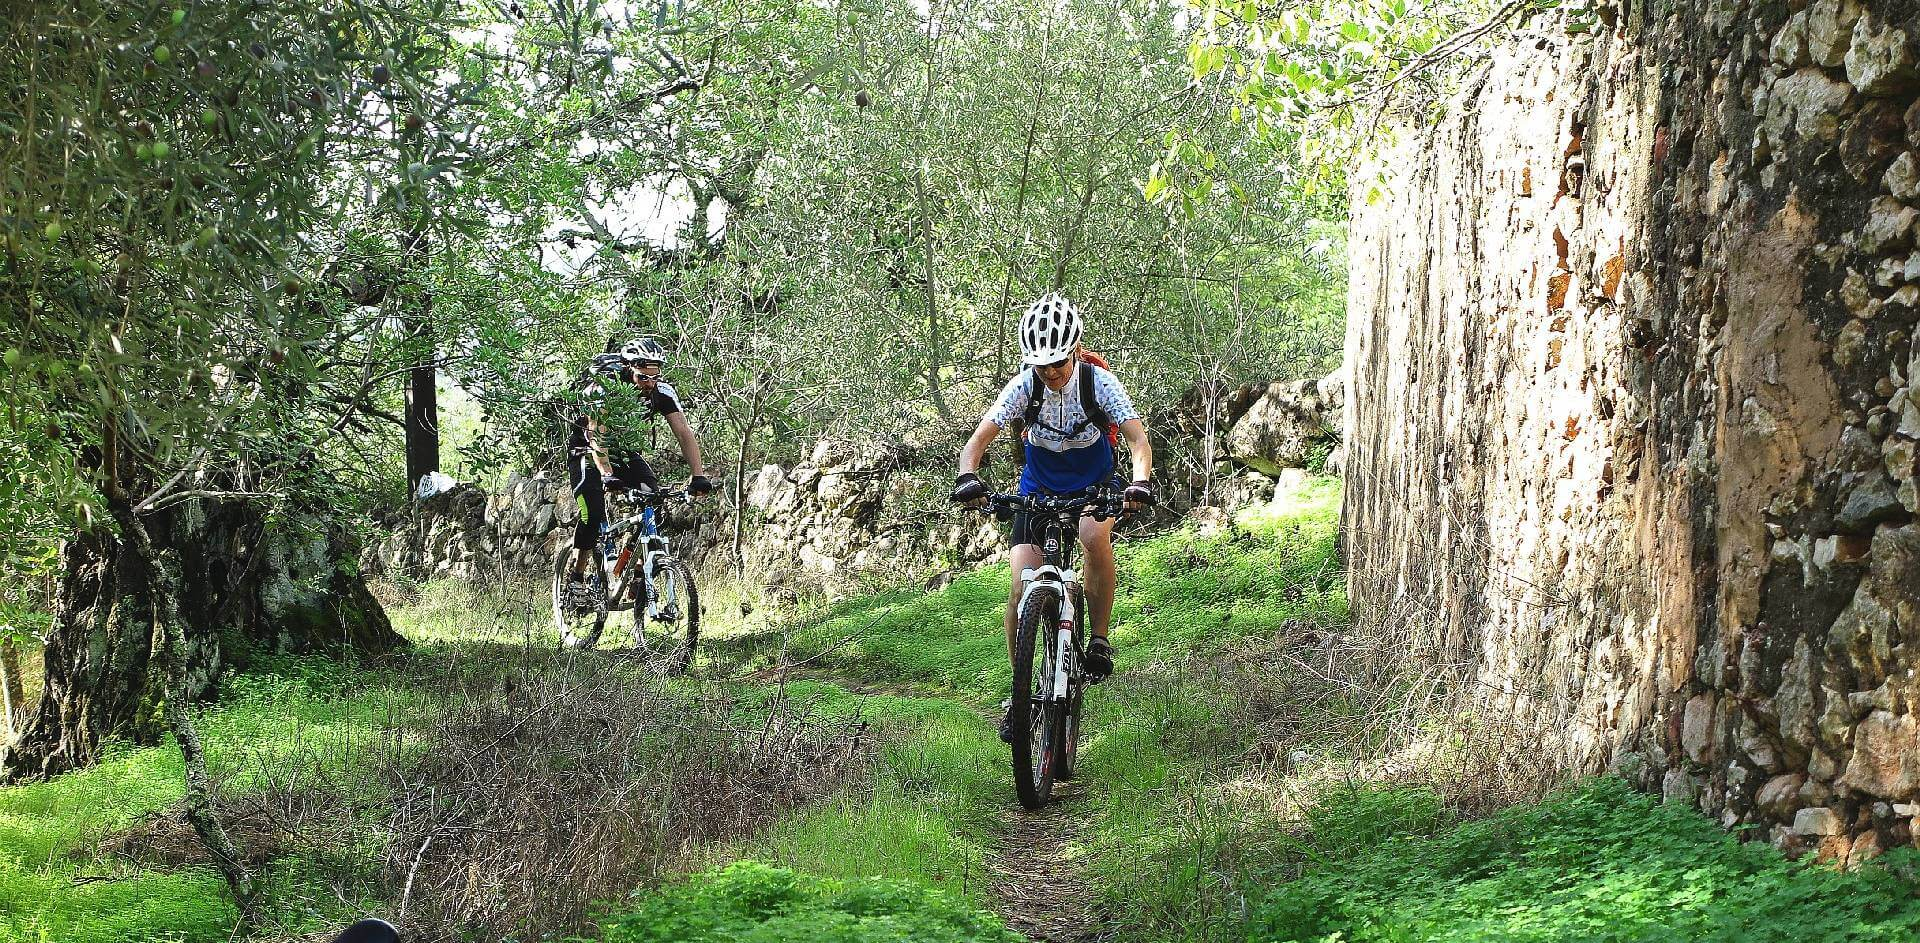 algarve downhill off-road ride